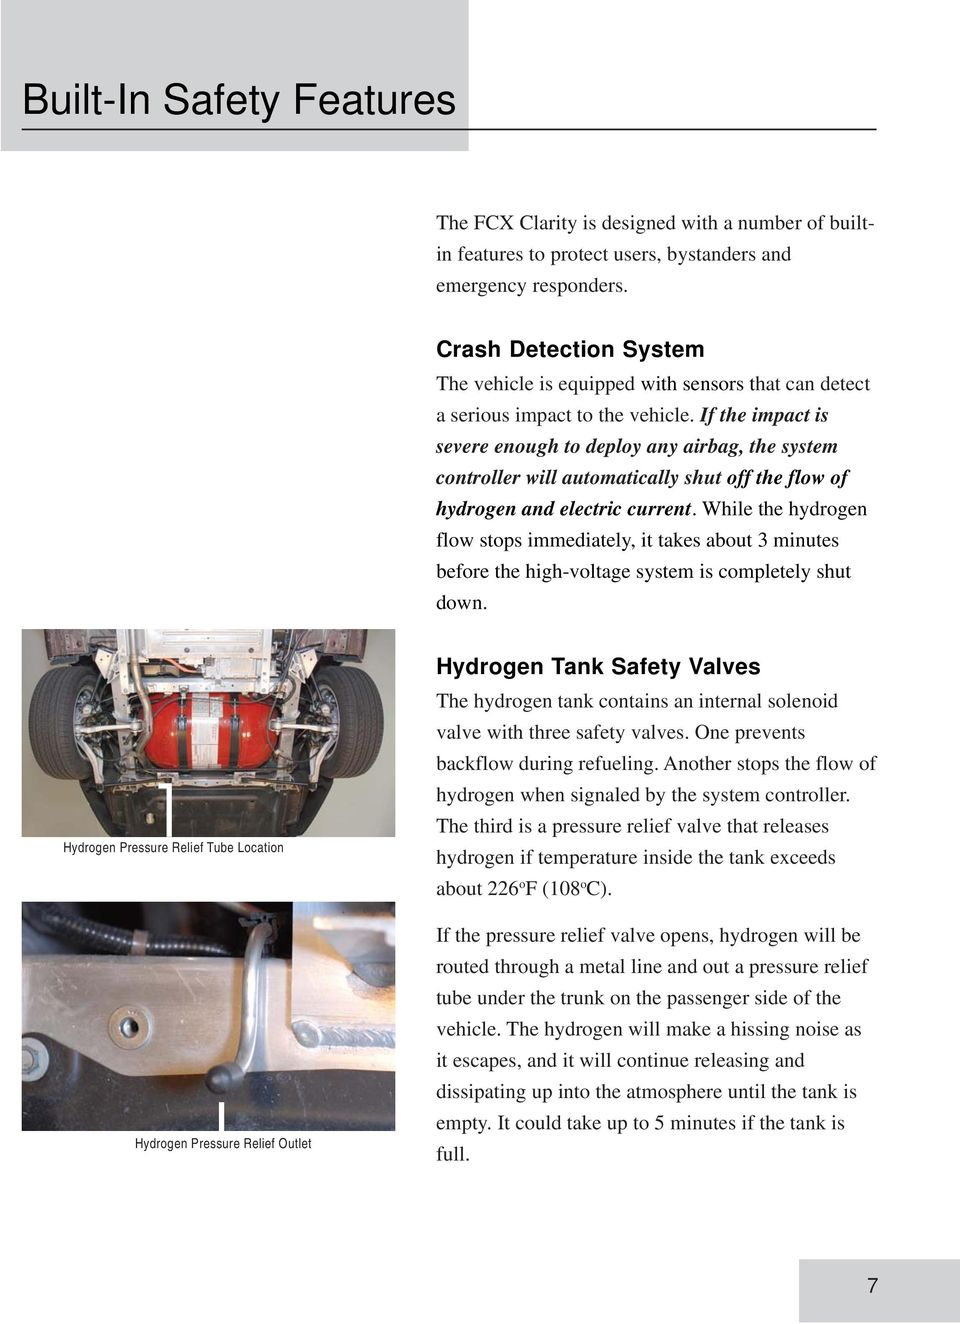 If the impact is severe enough to deploy any airbag, the system controller will automatically shut off the flow of hydrogen and electric current.